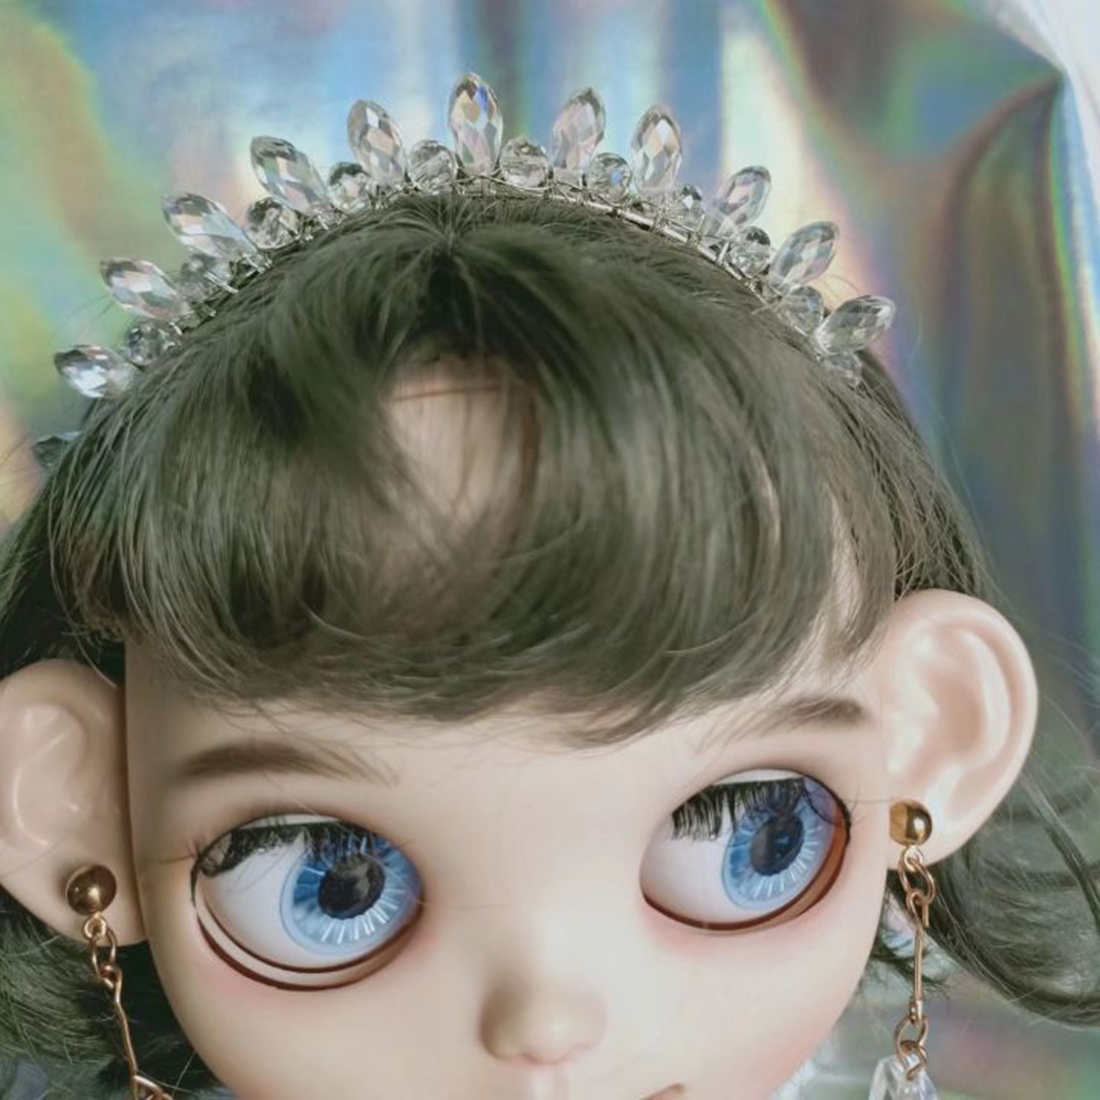 Modikerbjd 2020 Crystal Crown Headwear for Blyth Dolls - without Doll and Clothes